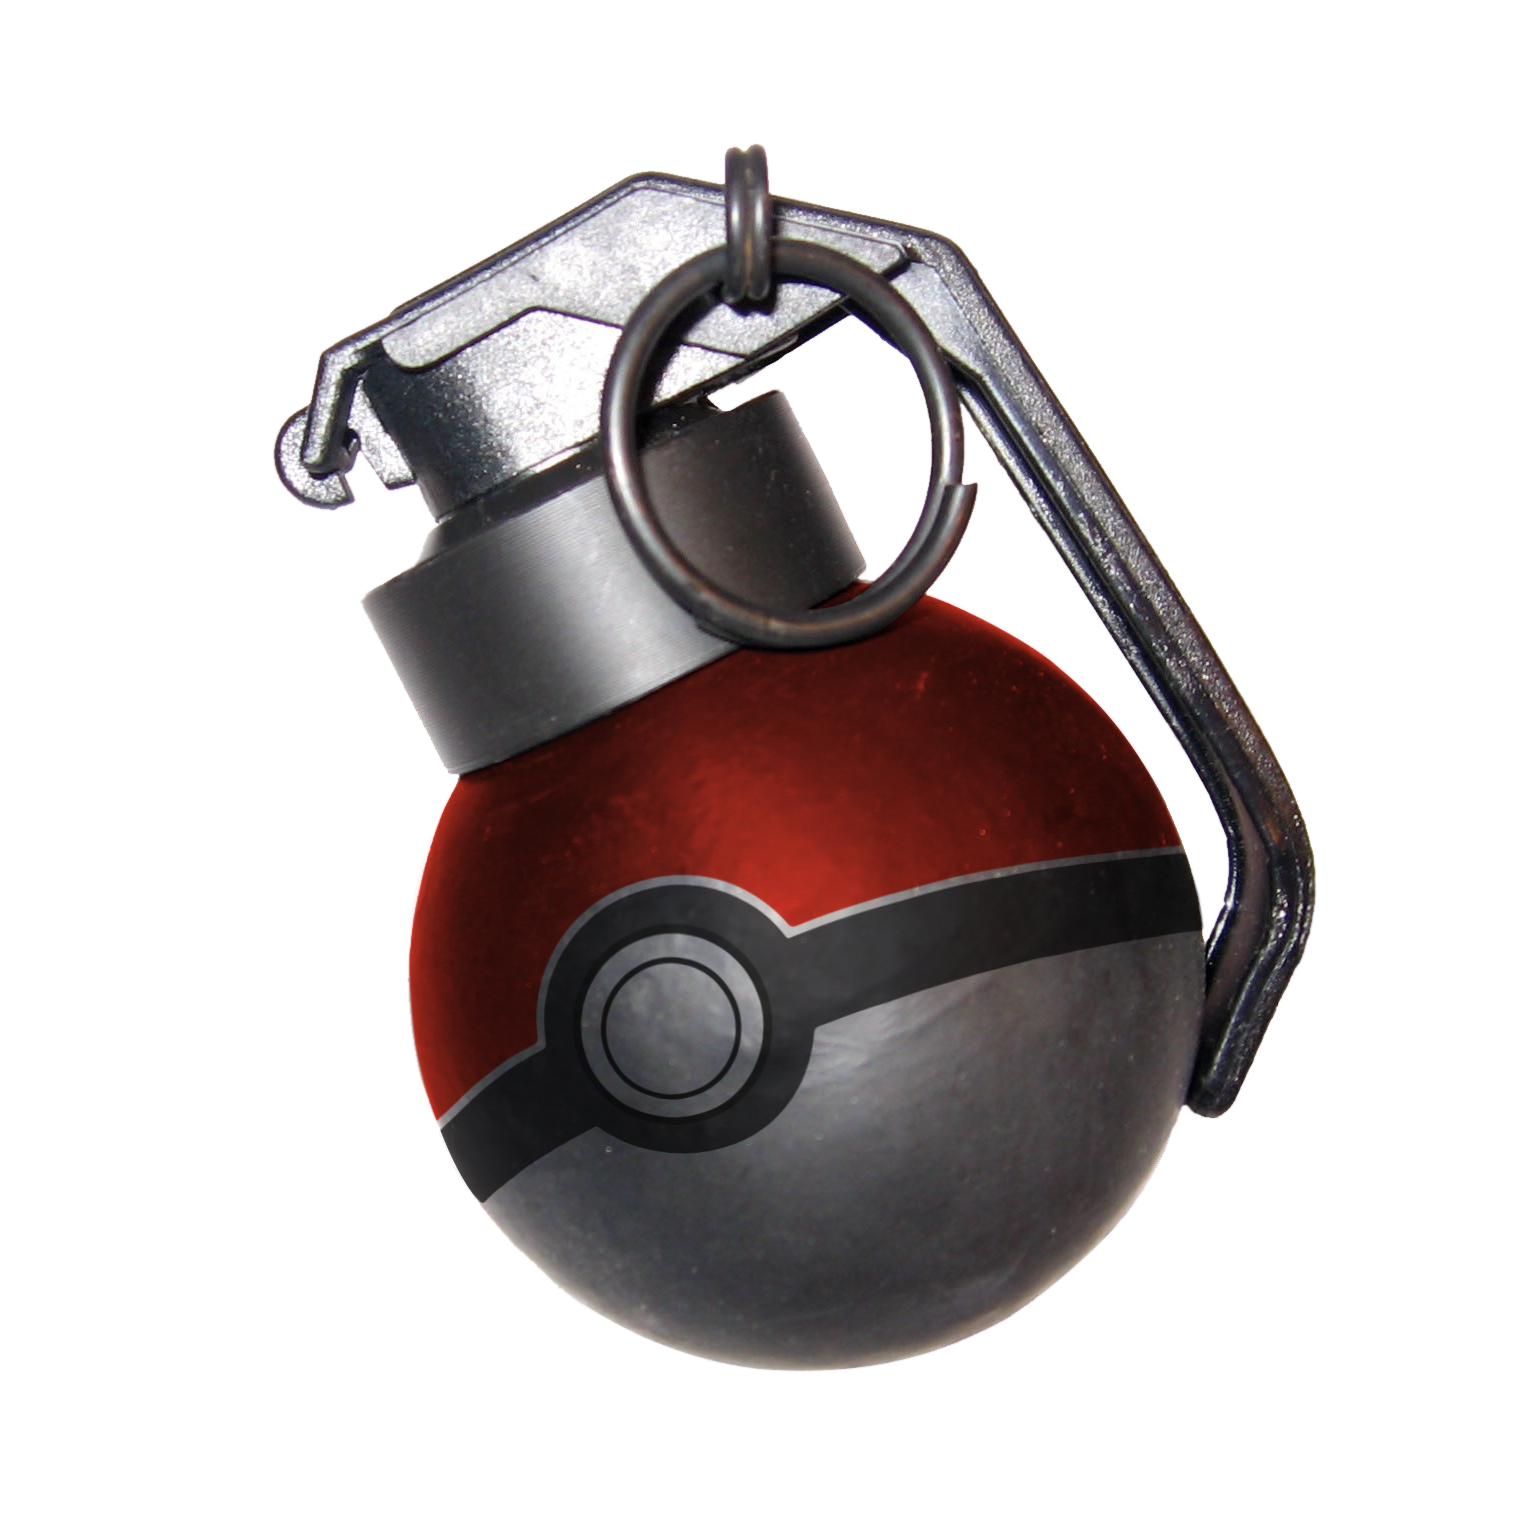 pokeball-pokemongo